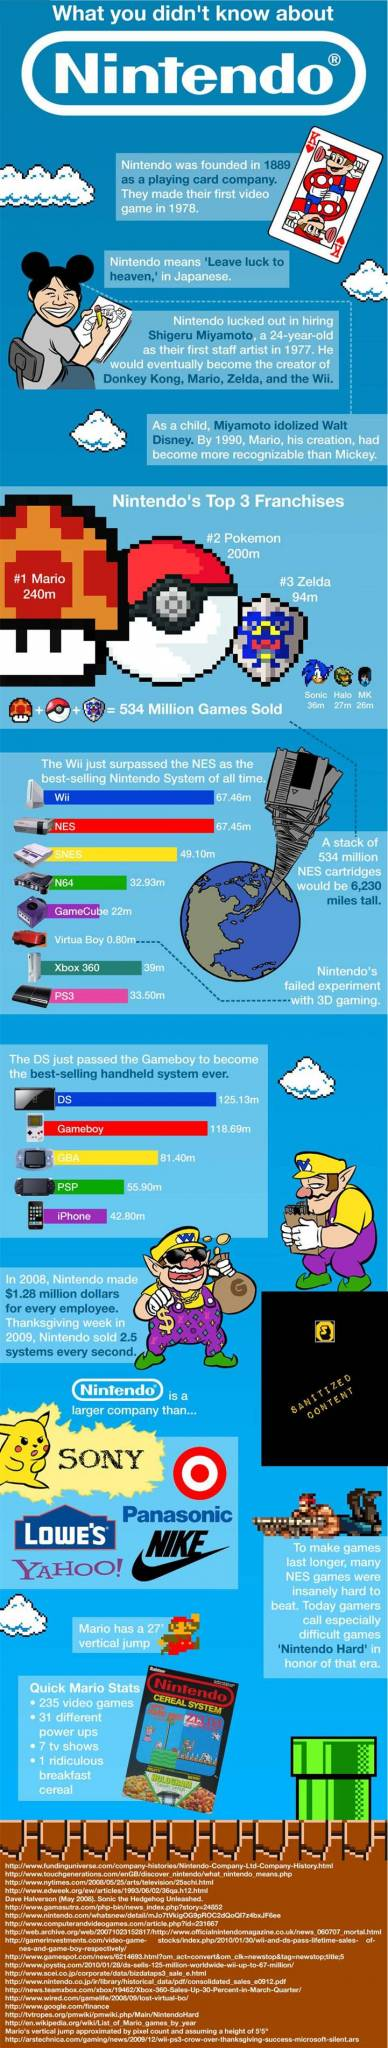 things-didnt-know-about-nintendo-infographic